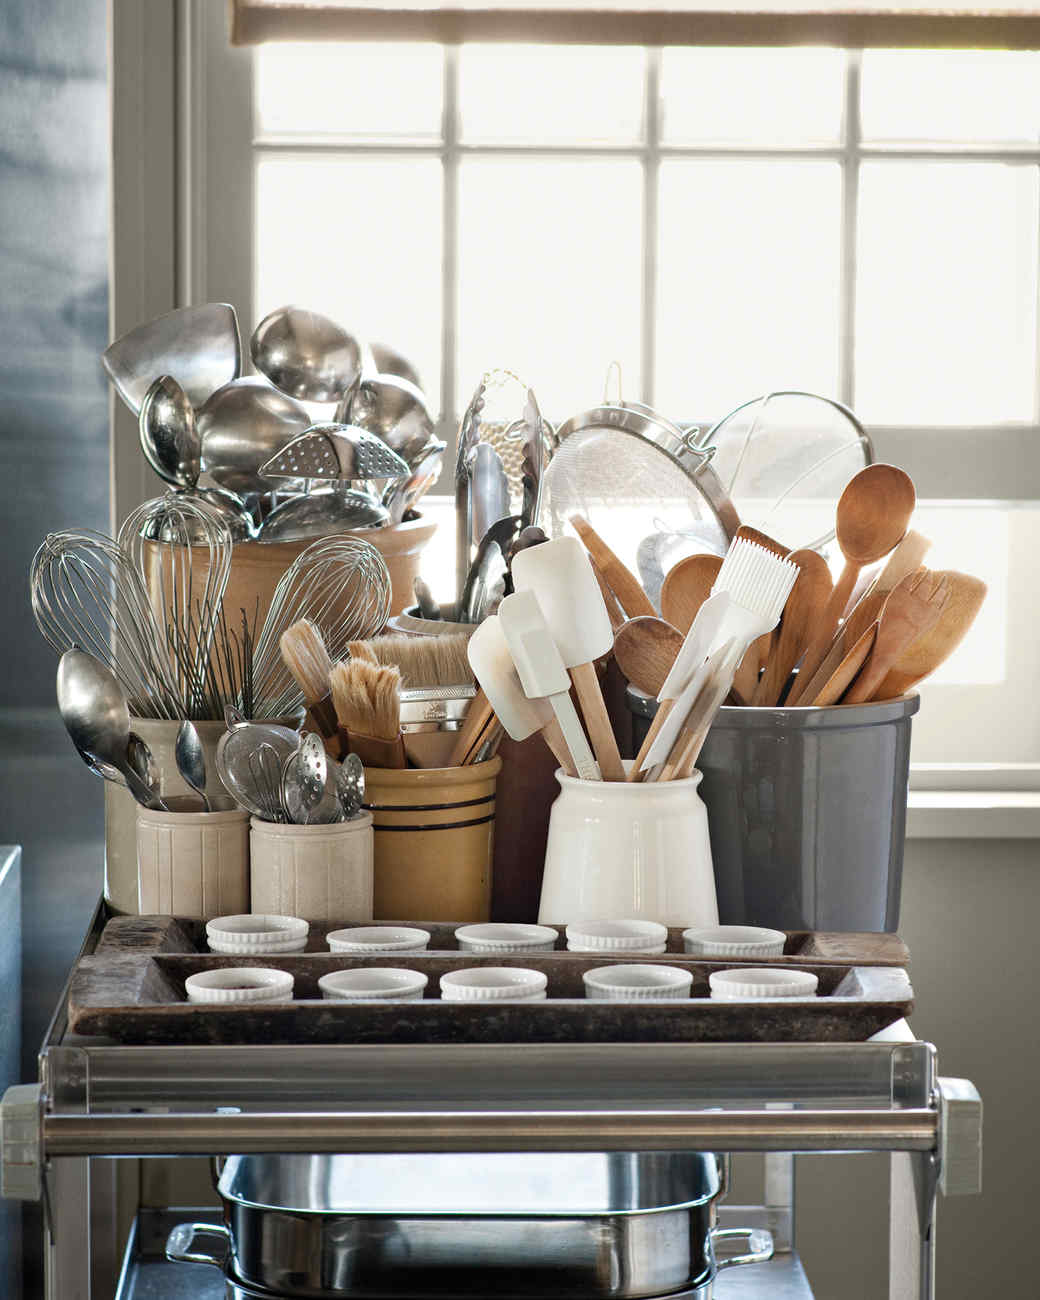 Martha Stewart Kitchen Marthas 50 Top Kitchen Tips Martha Stewart